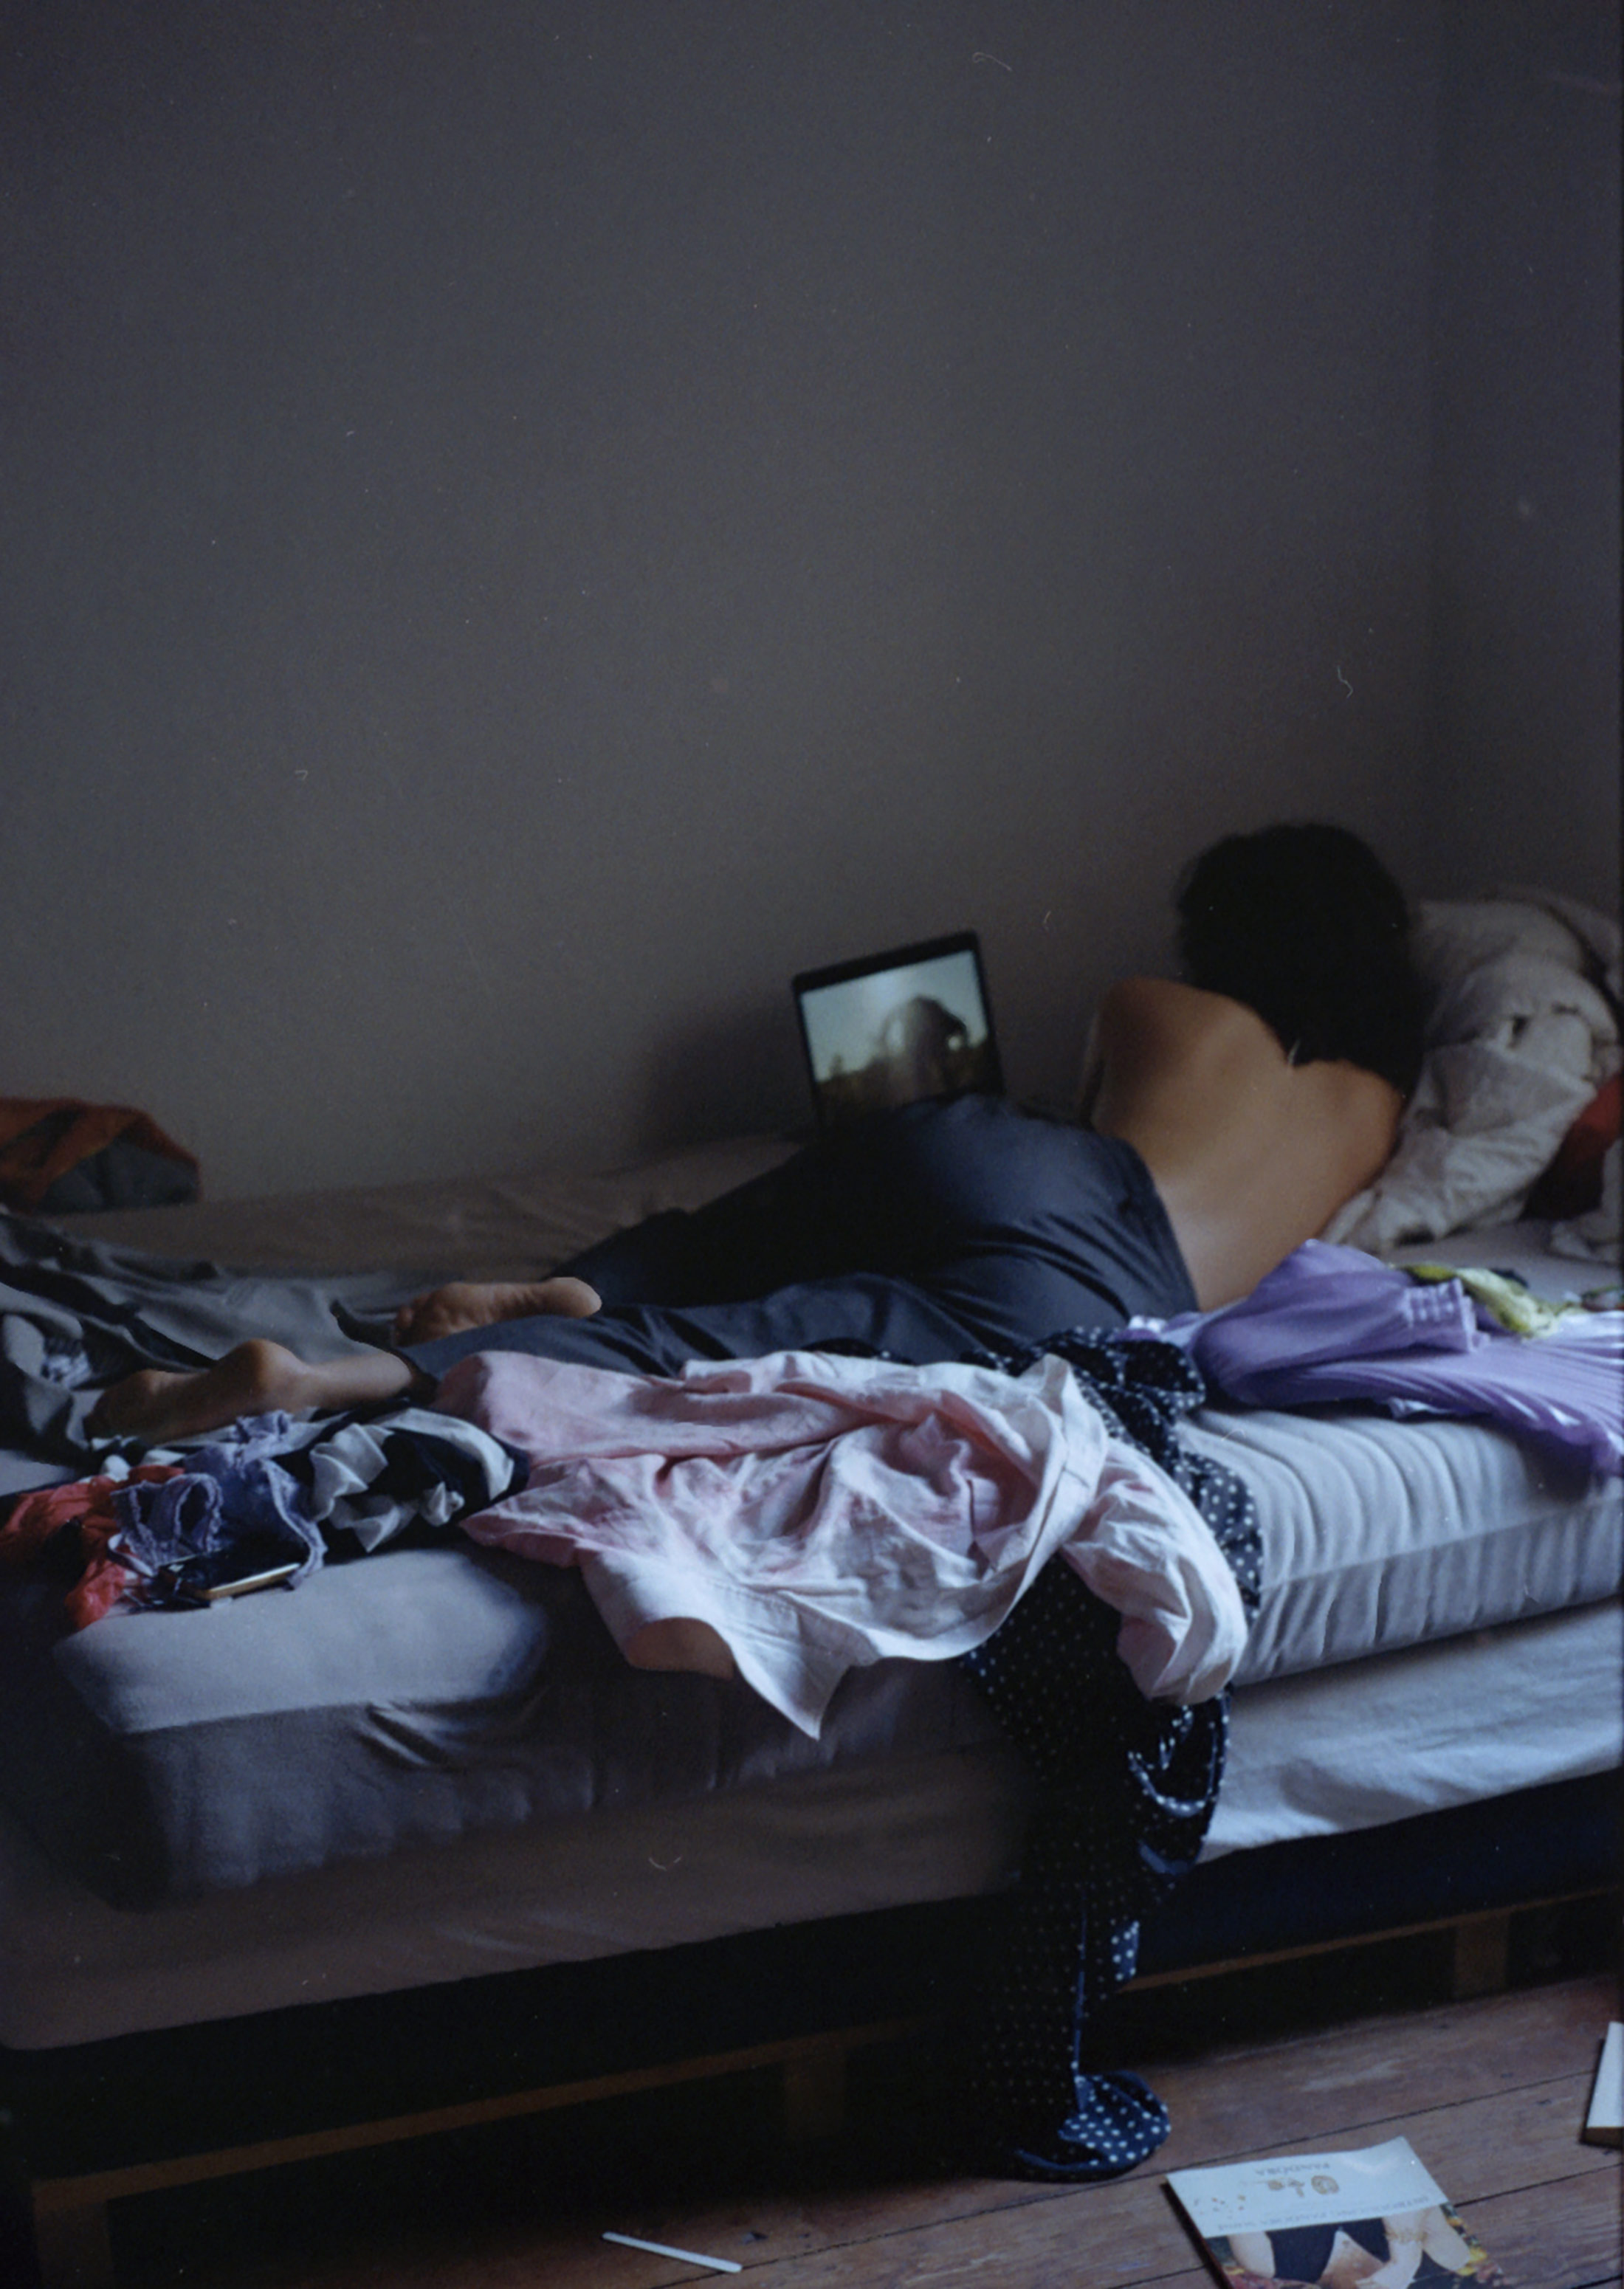 paula hummer, young female photographer, portrait photos, girl on a bed, serene, 35mm,